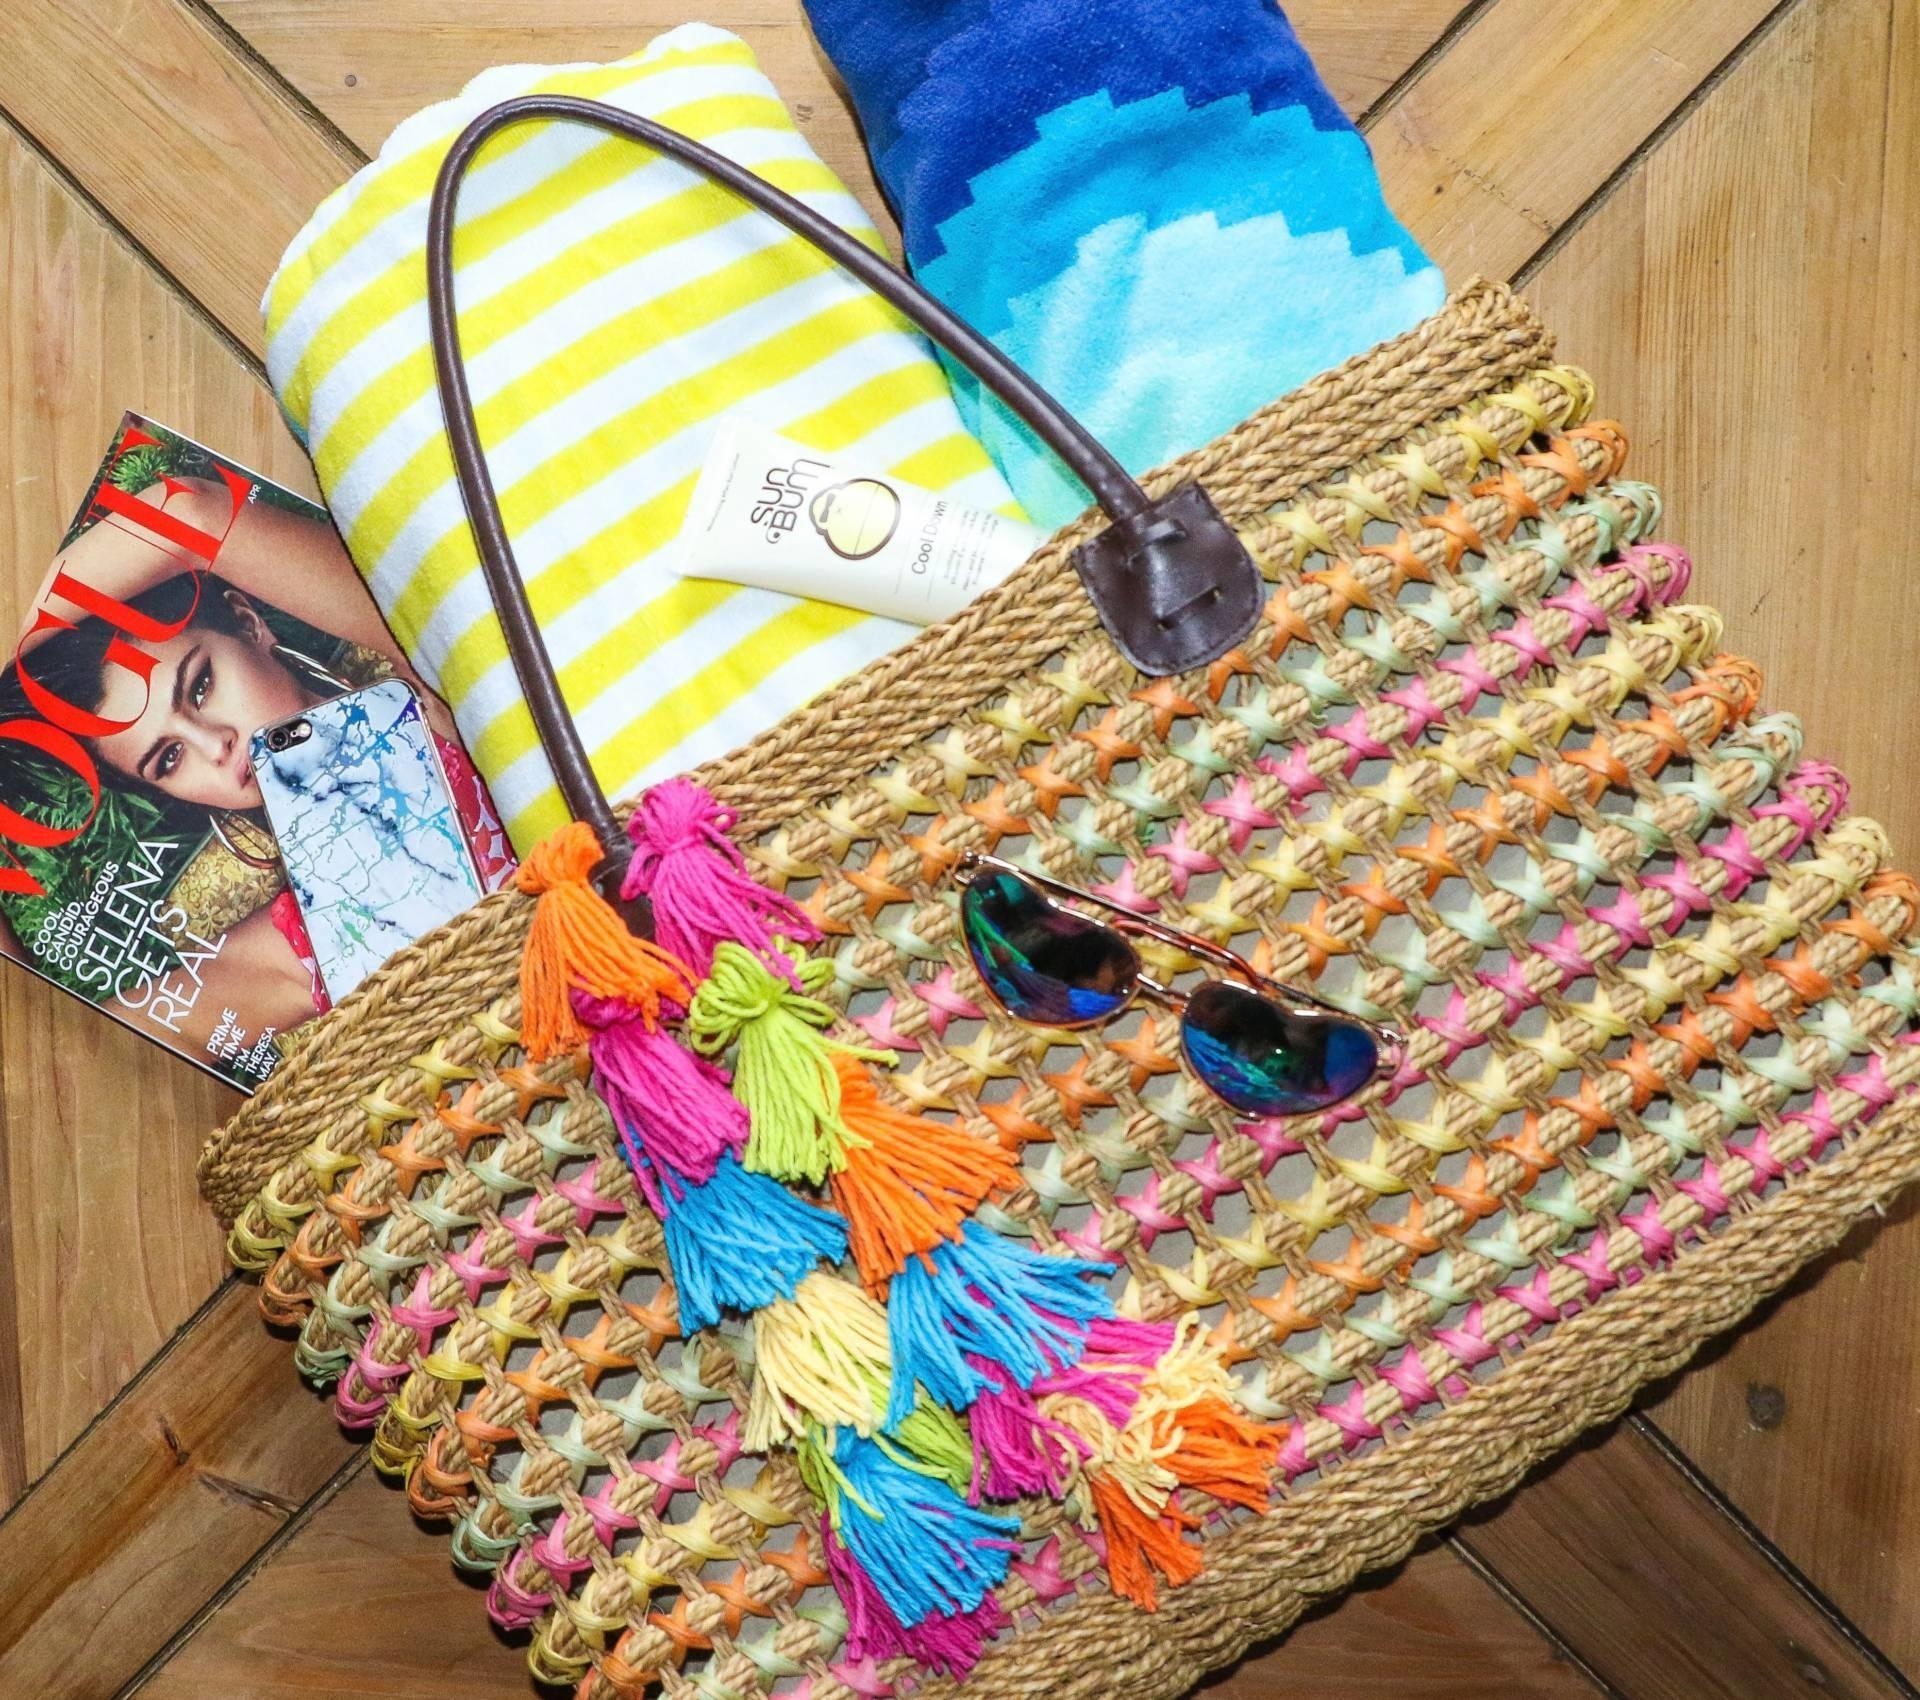 Diy Tassel Charm Beach Bag Goldwill Digger